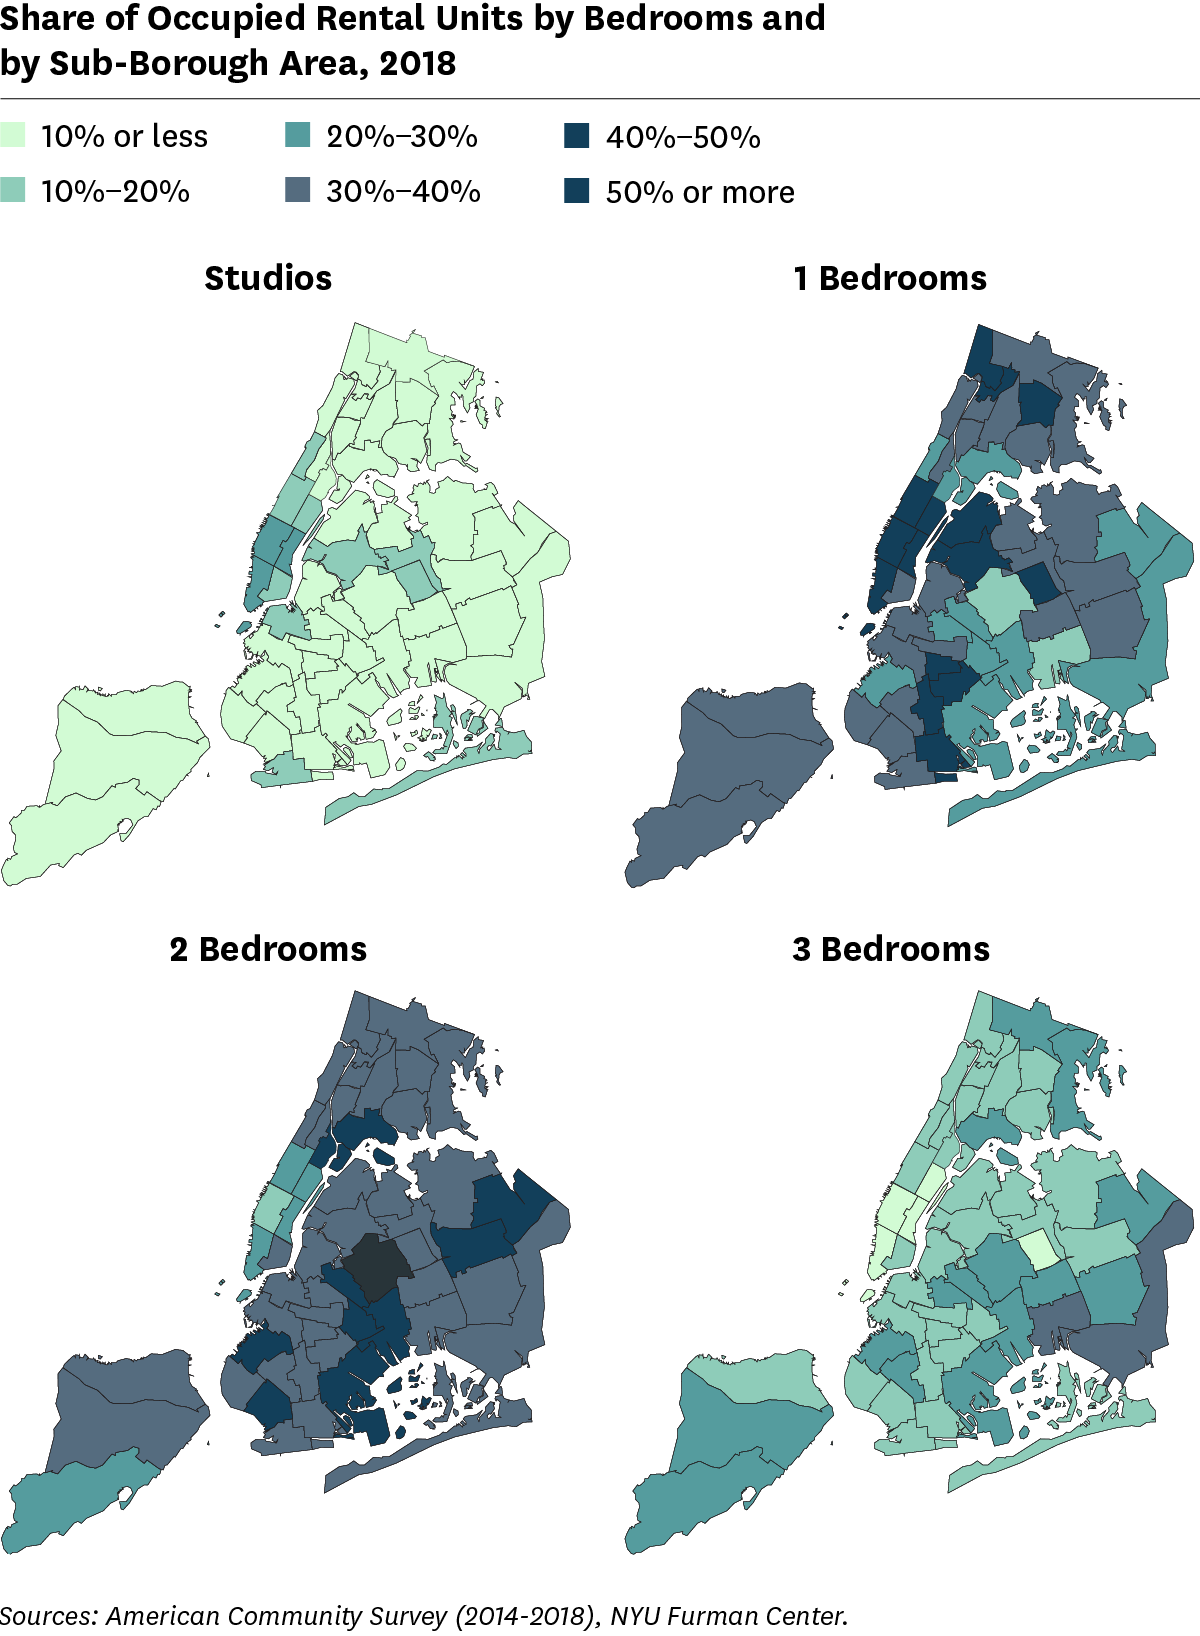 Series of four maps showing percentage share of rental units in 2018 across NYC neighborhoods for studios, one-bedrooms, two-bedrooms, and 3-bedrooms